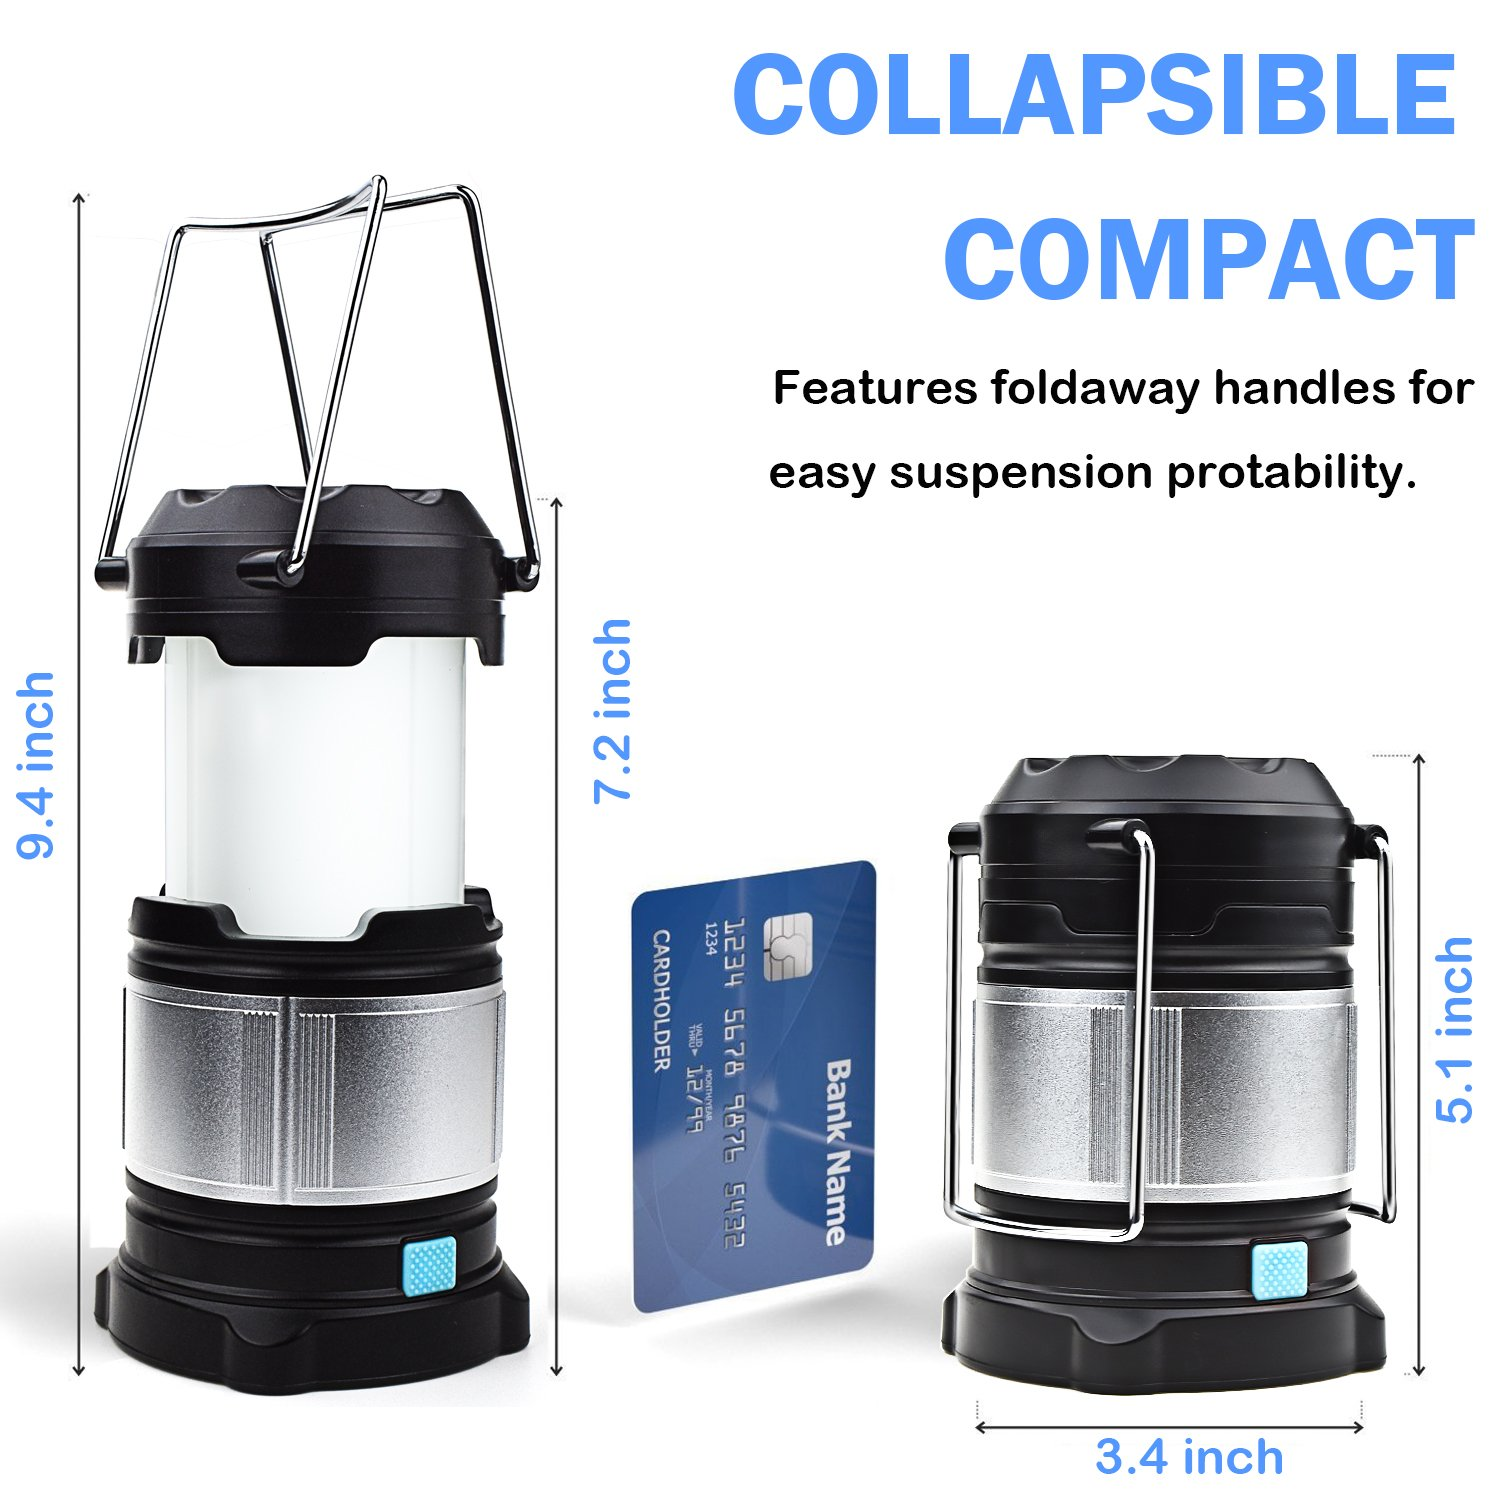 Alcoon Rechargeable LED Camping Lantern Light Lamp with 5600mAh Power Bank, Portable Collapsible Waterproof Outdoor Light with 18650 Li-ion Batteries for Camping Traveling Tent, Emergency, Outage by Alcoon (Image #3)